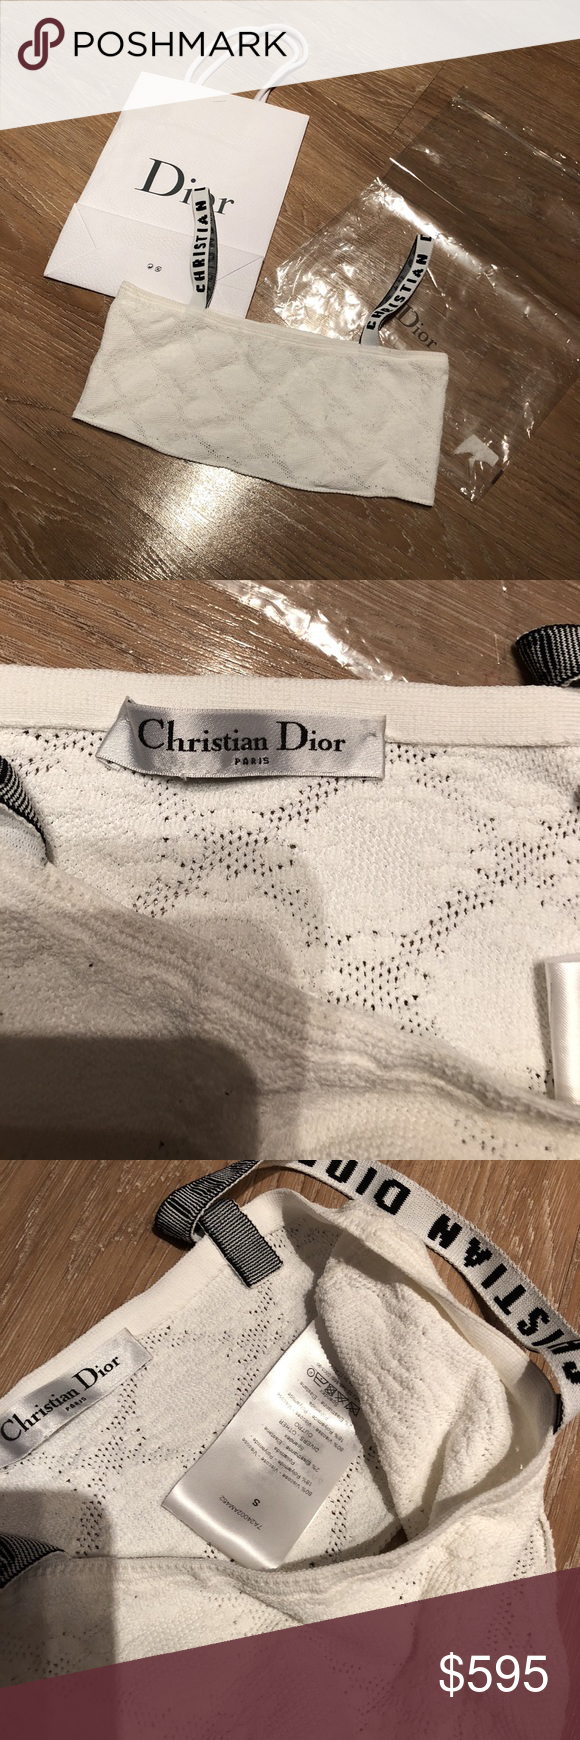 fd0ac7fbbdc06 💕Christian Dior J adior Bralette White Small💕 Christian Dior J adior  white bralette. Purchased from a reputable second hand site. Size small.  Dior Tops